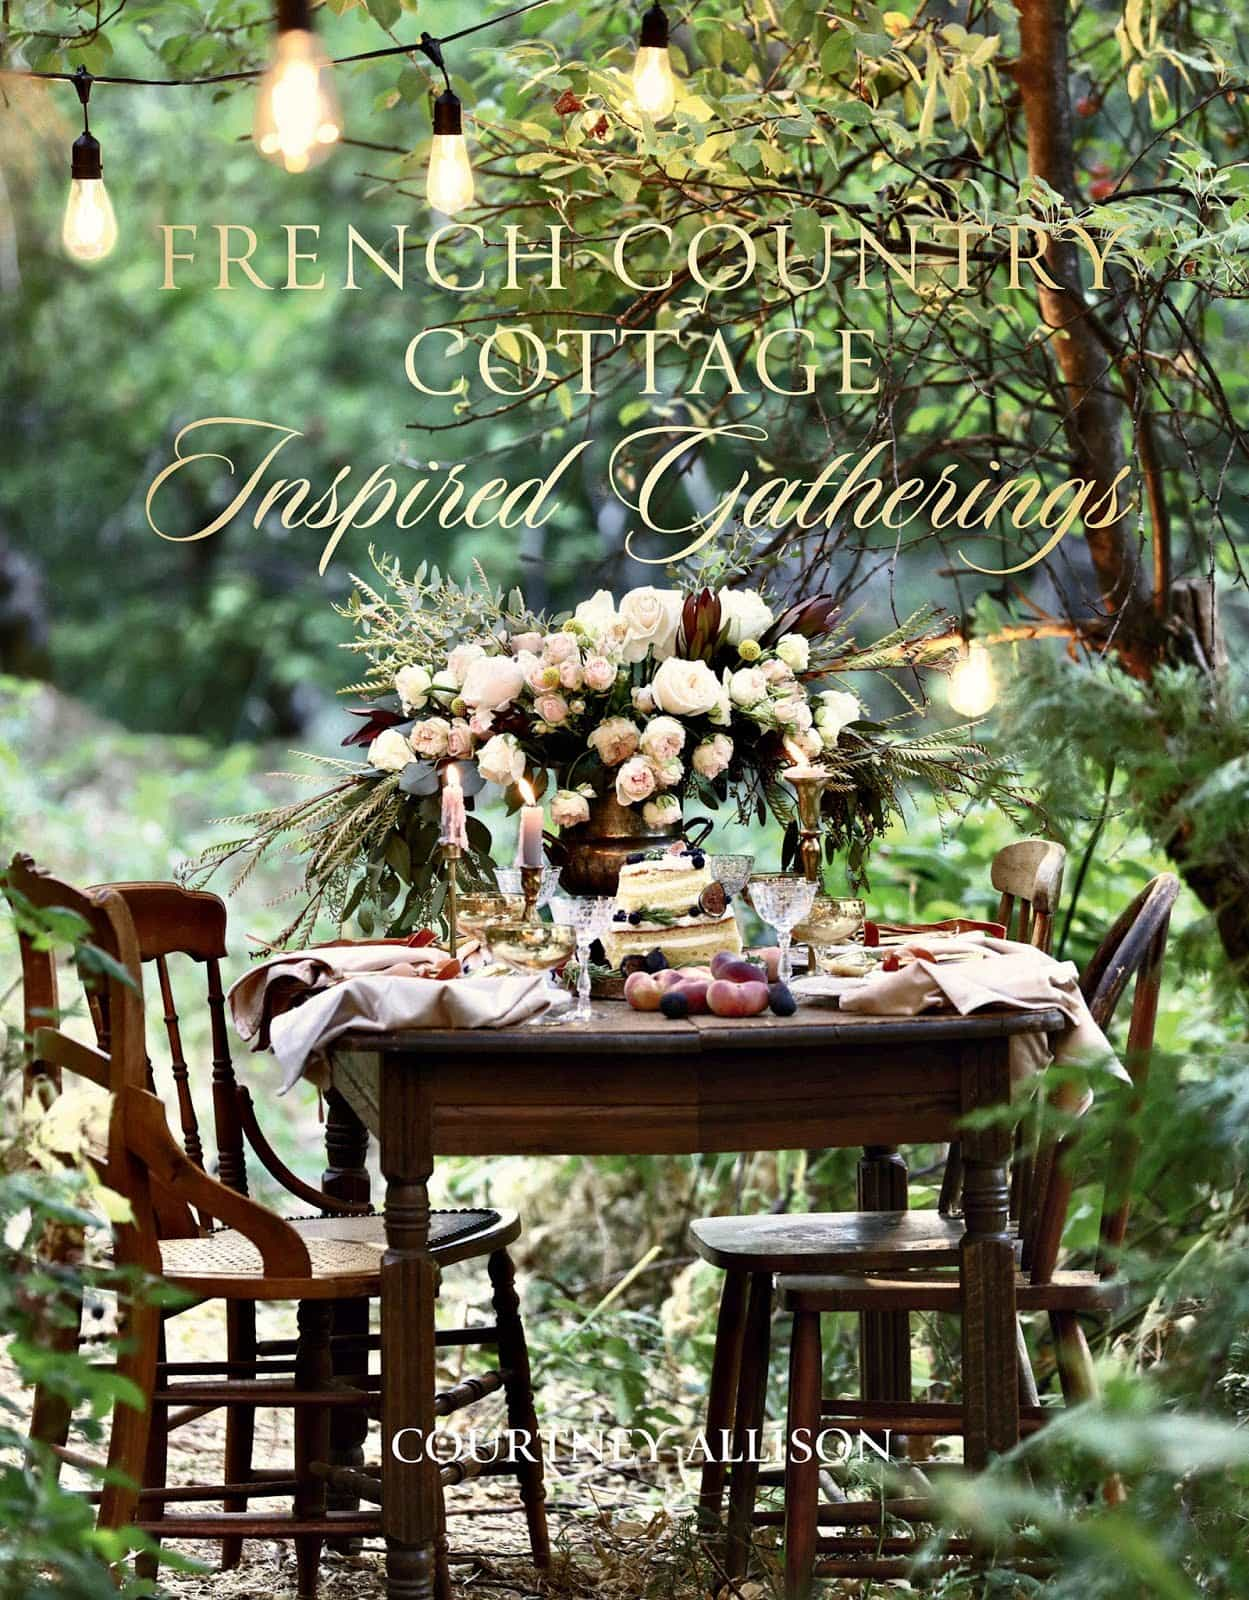 French Country Cottage Inspired Gatherings book